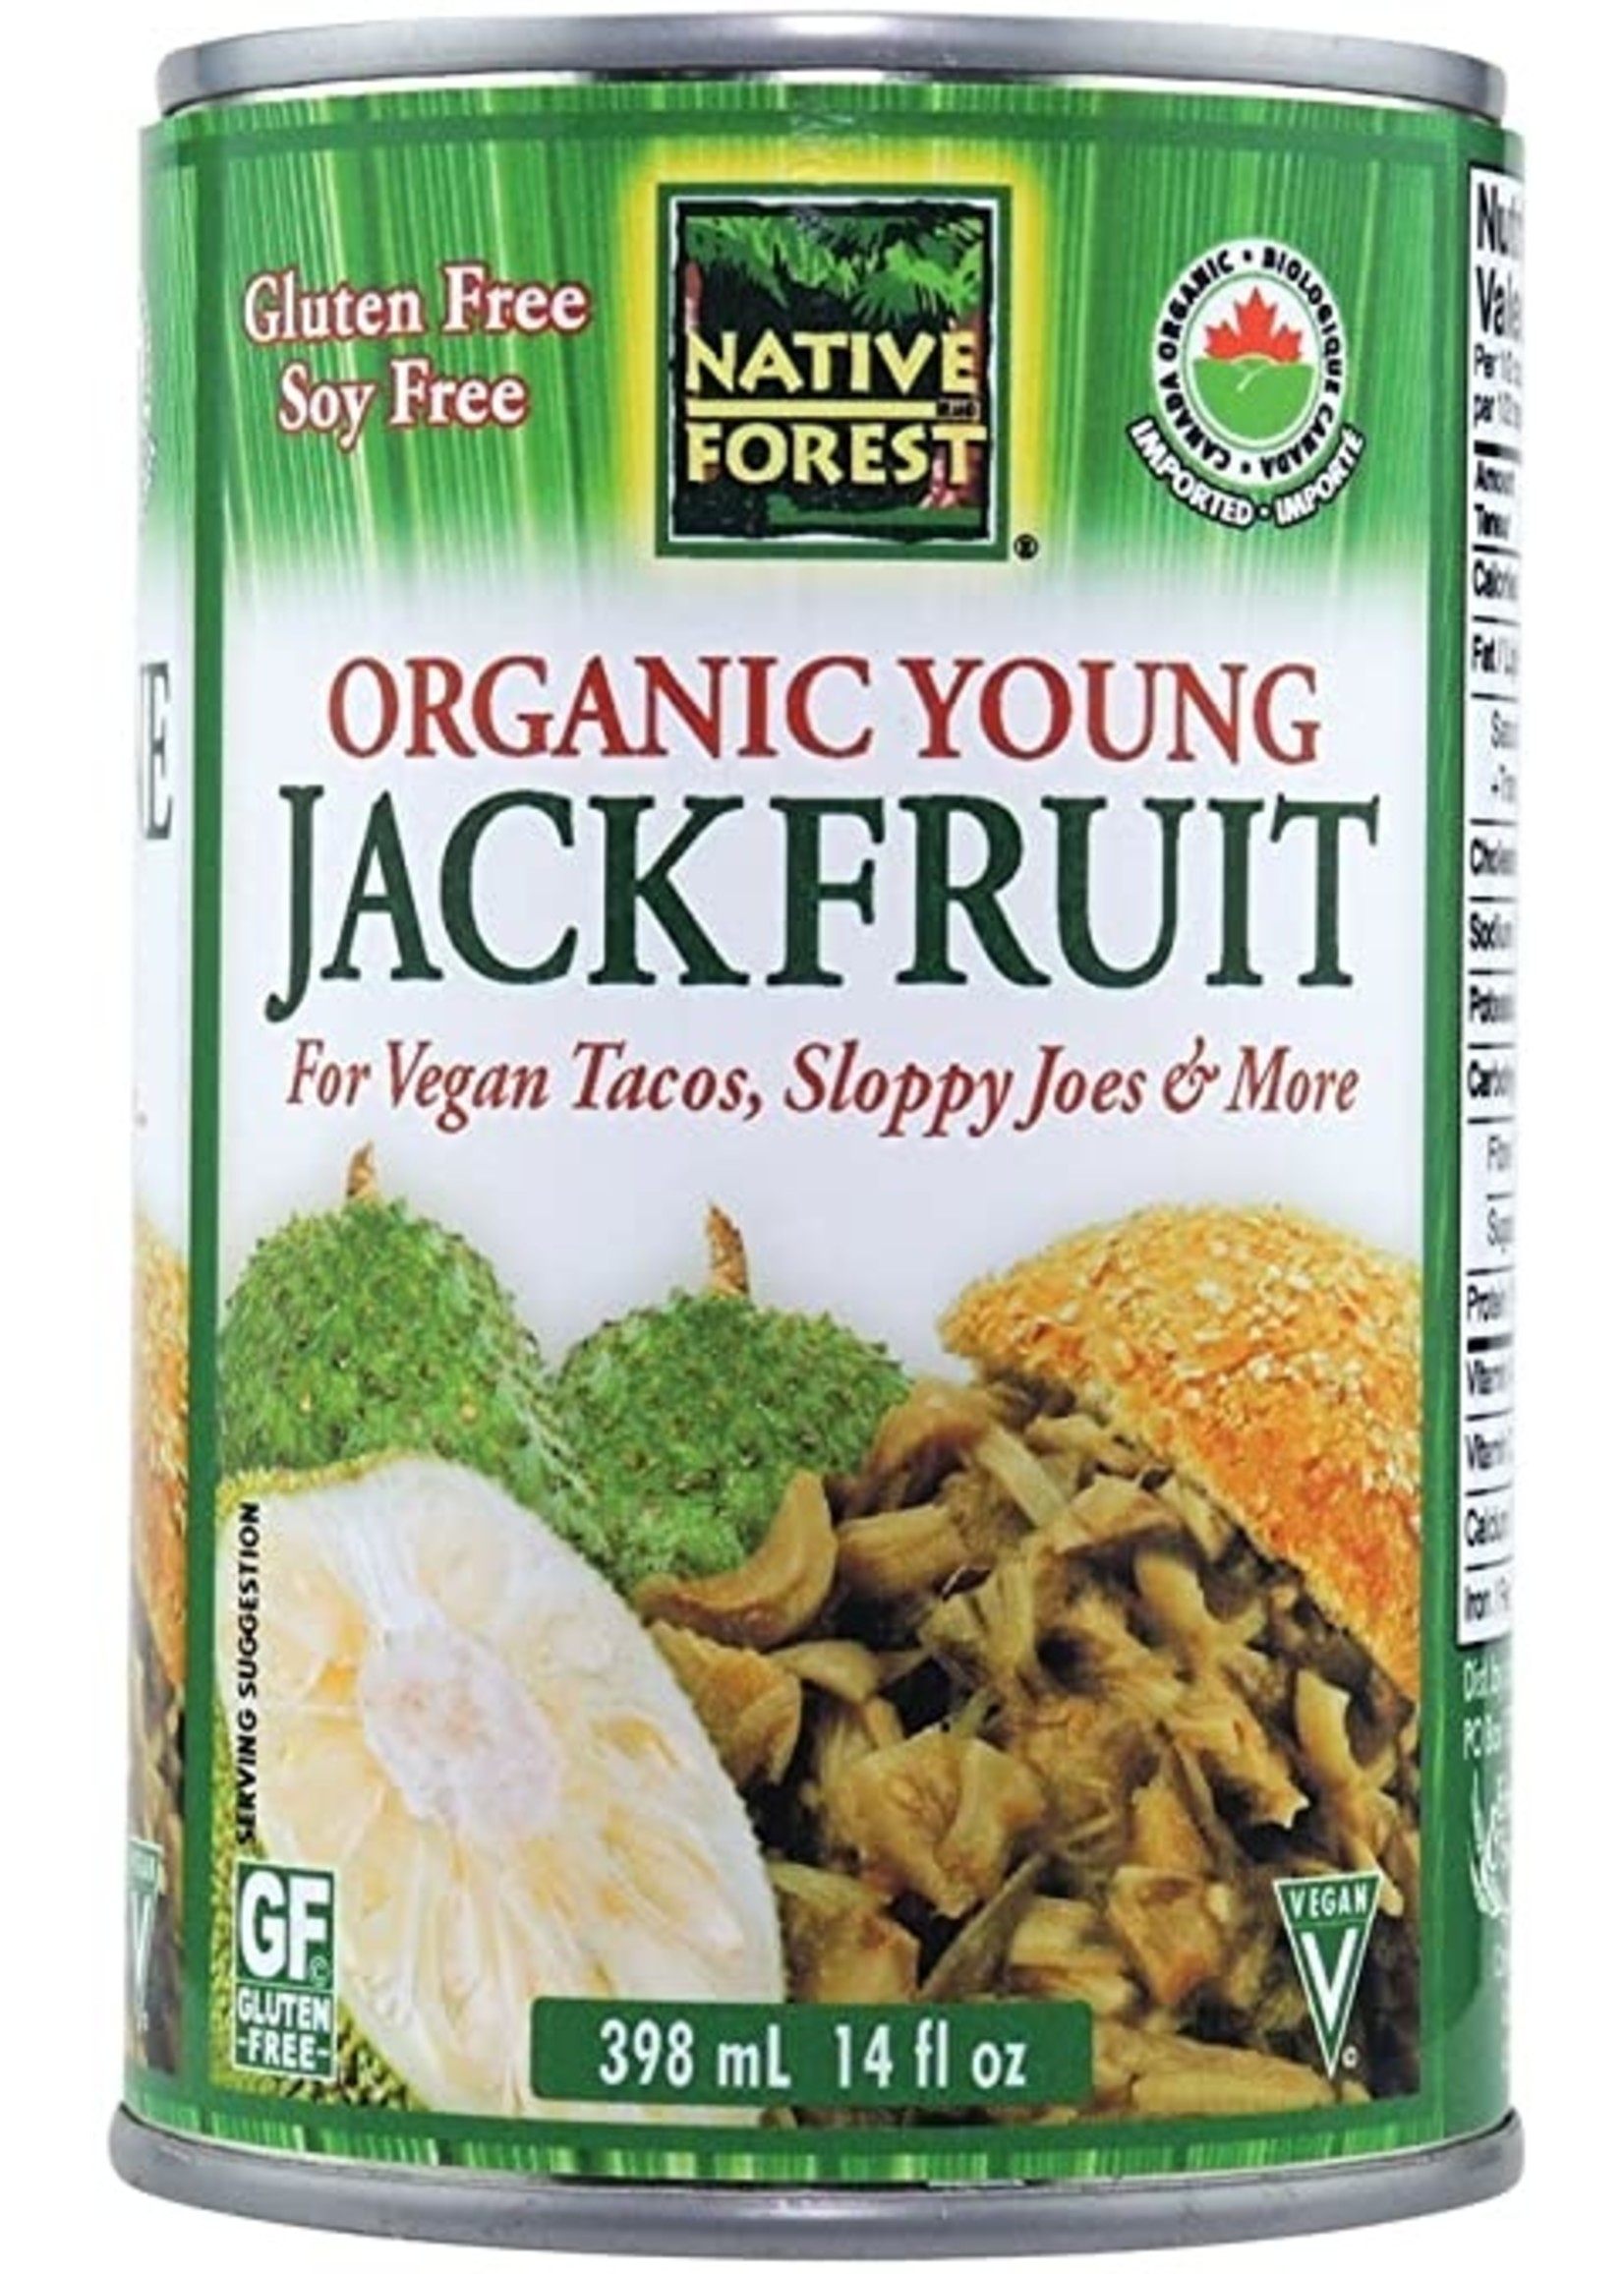 Native Forest Jackfruit, Young, Organic (can)